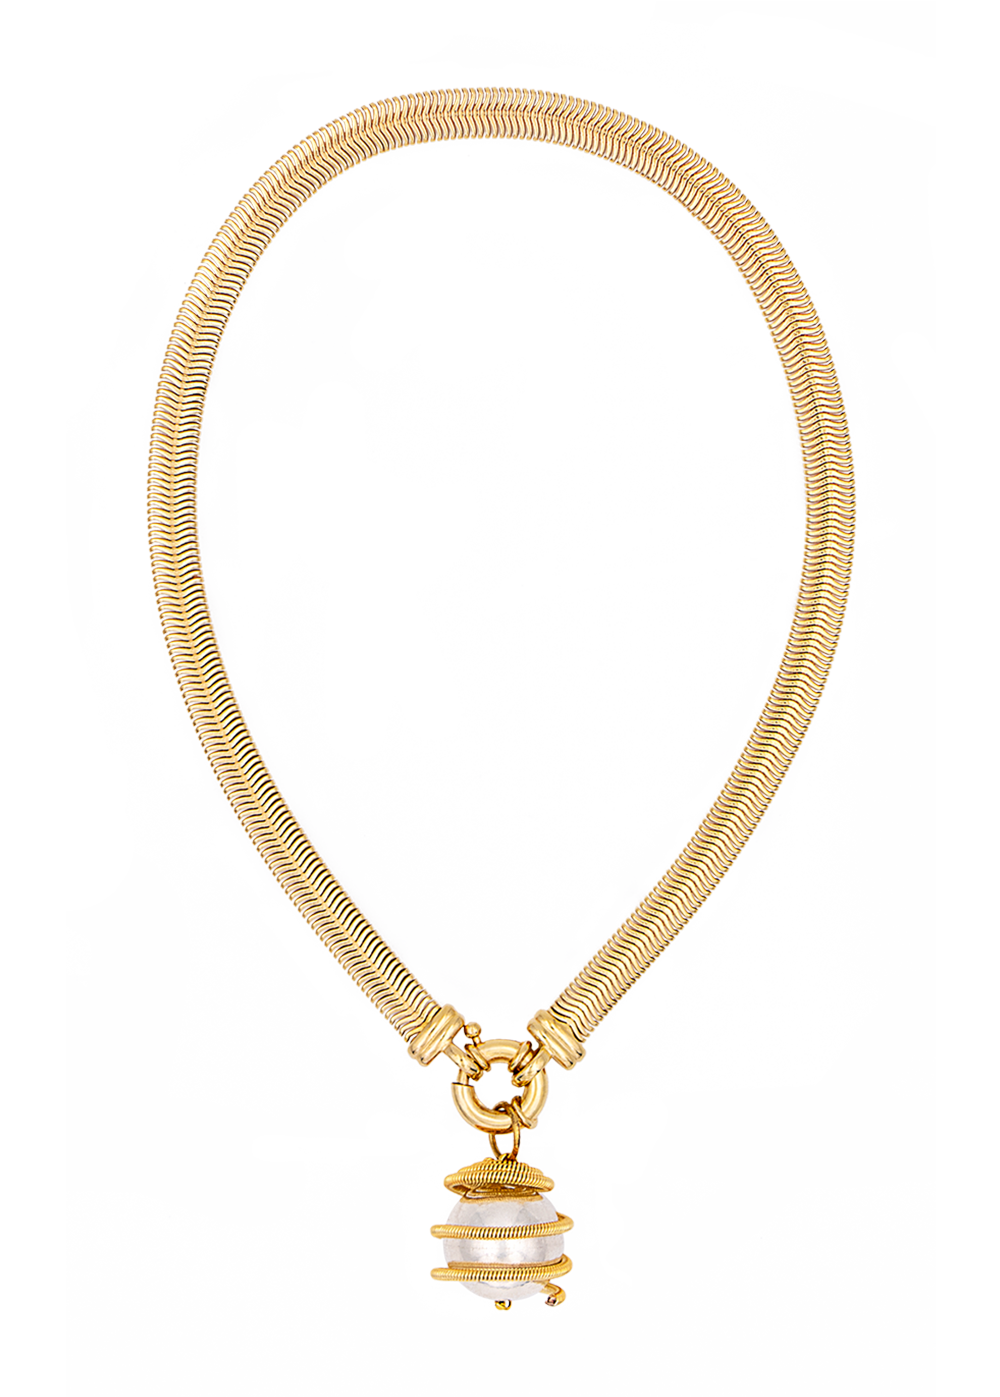 Lib necklace by Timeless Pearly